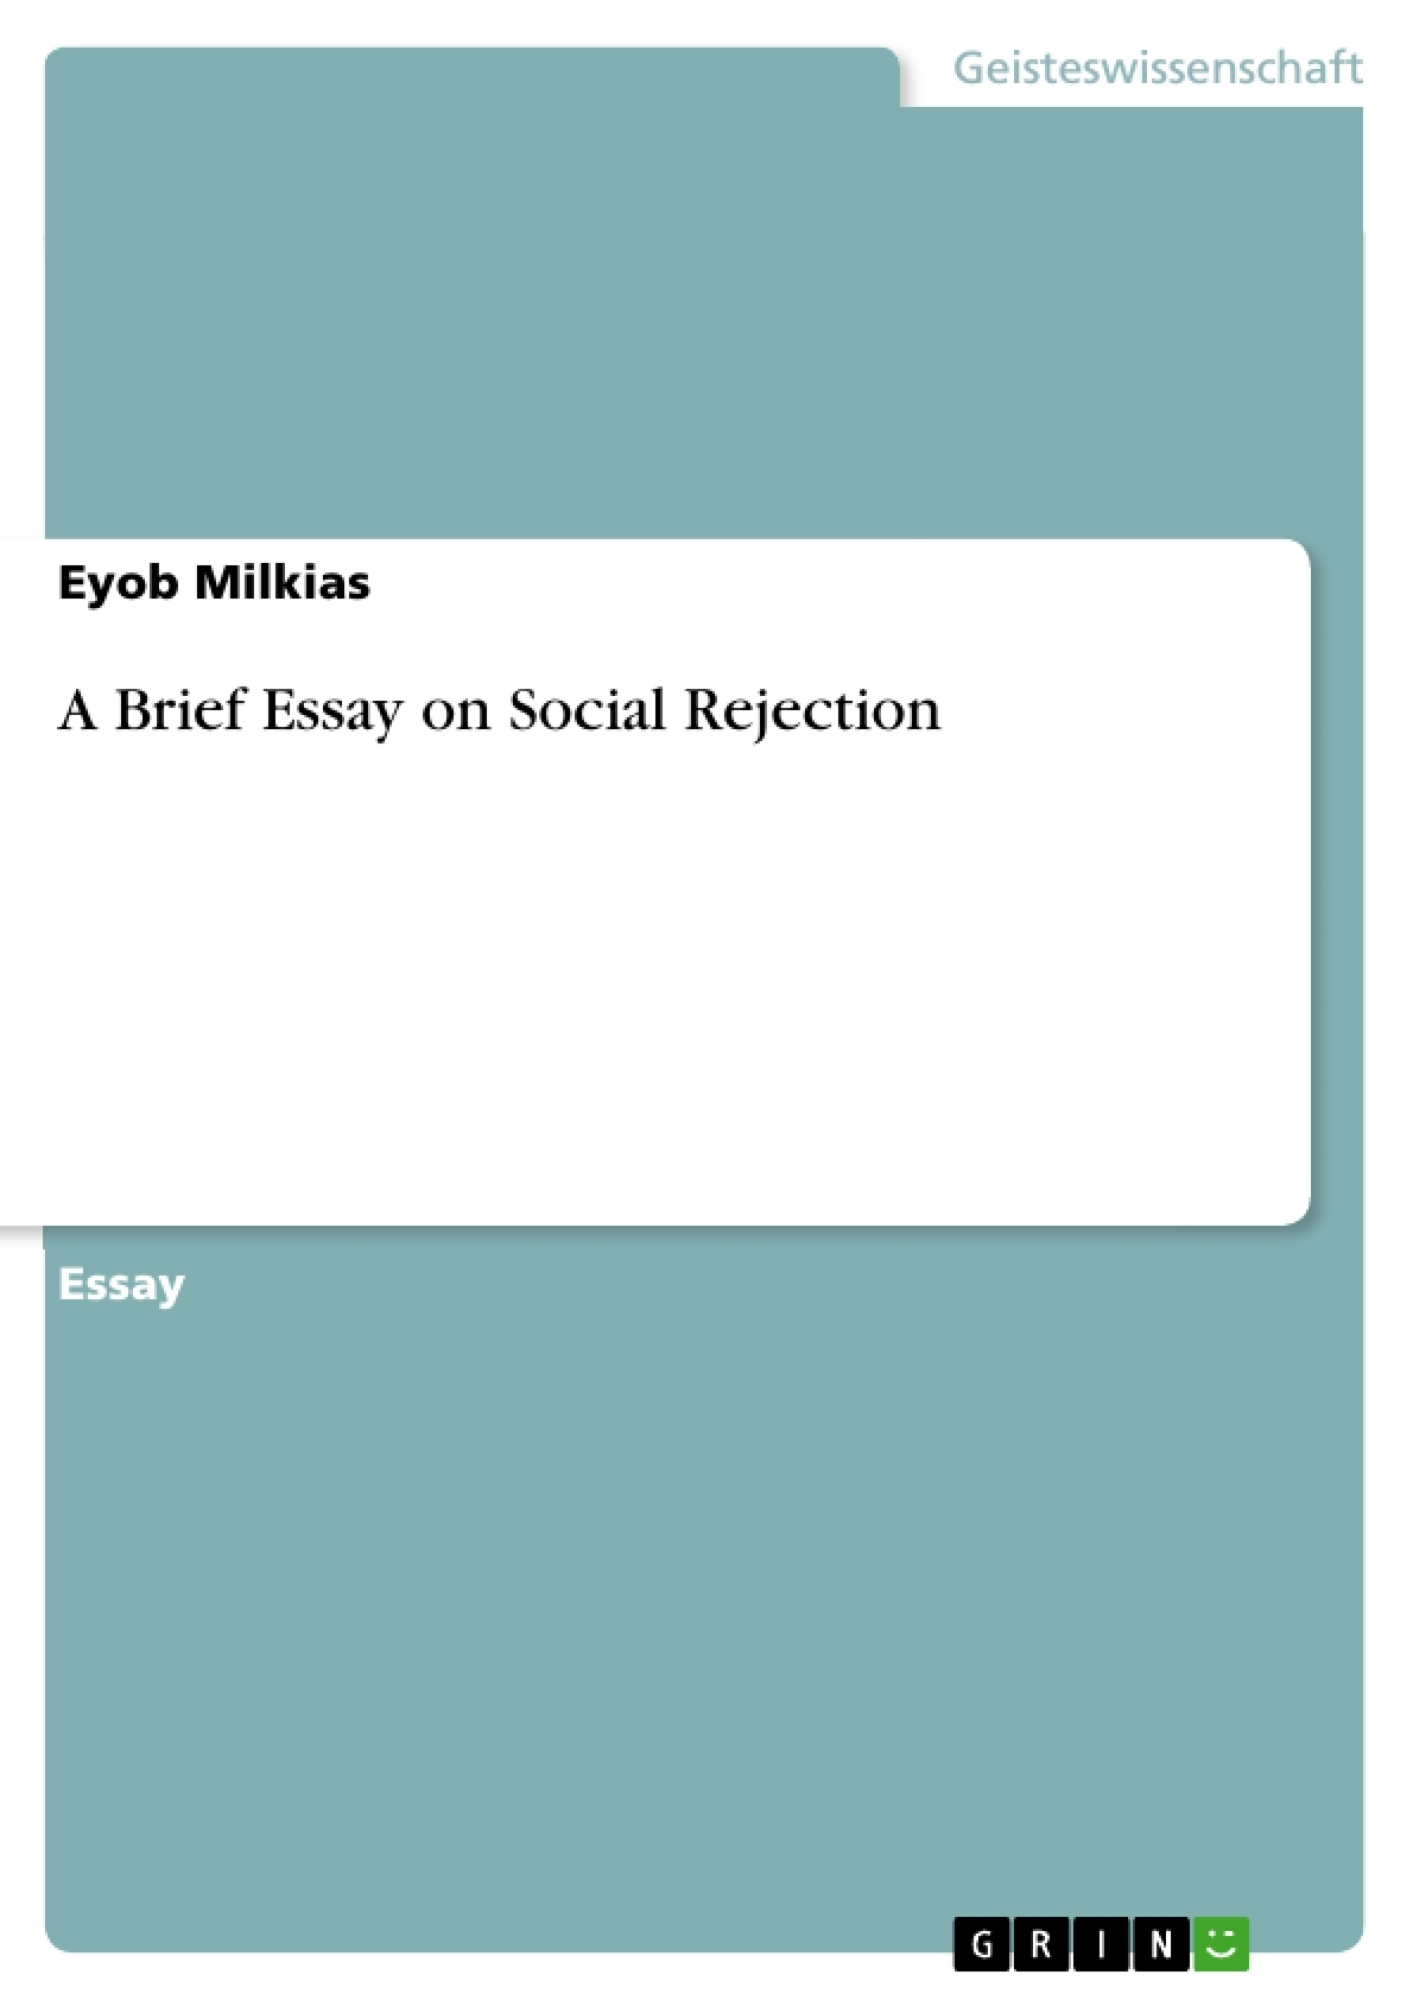 Titel: A Brief Essay on Social Rejection